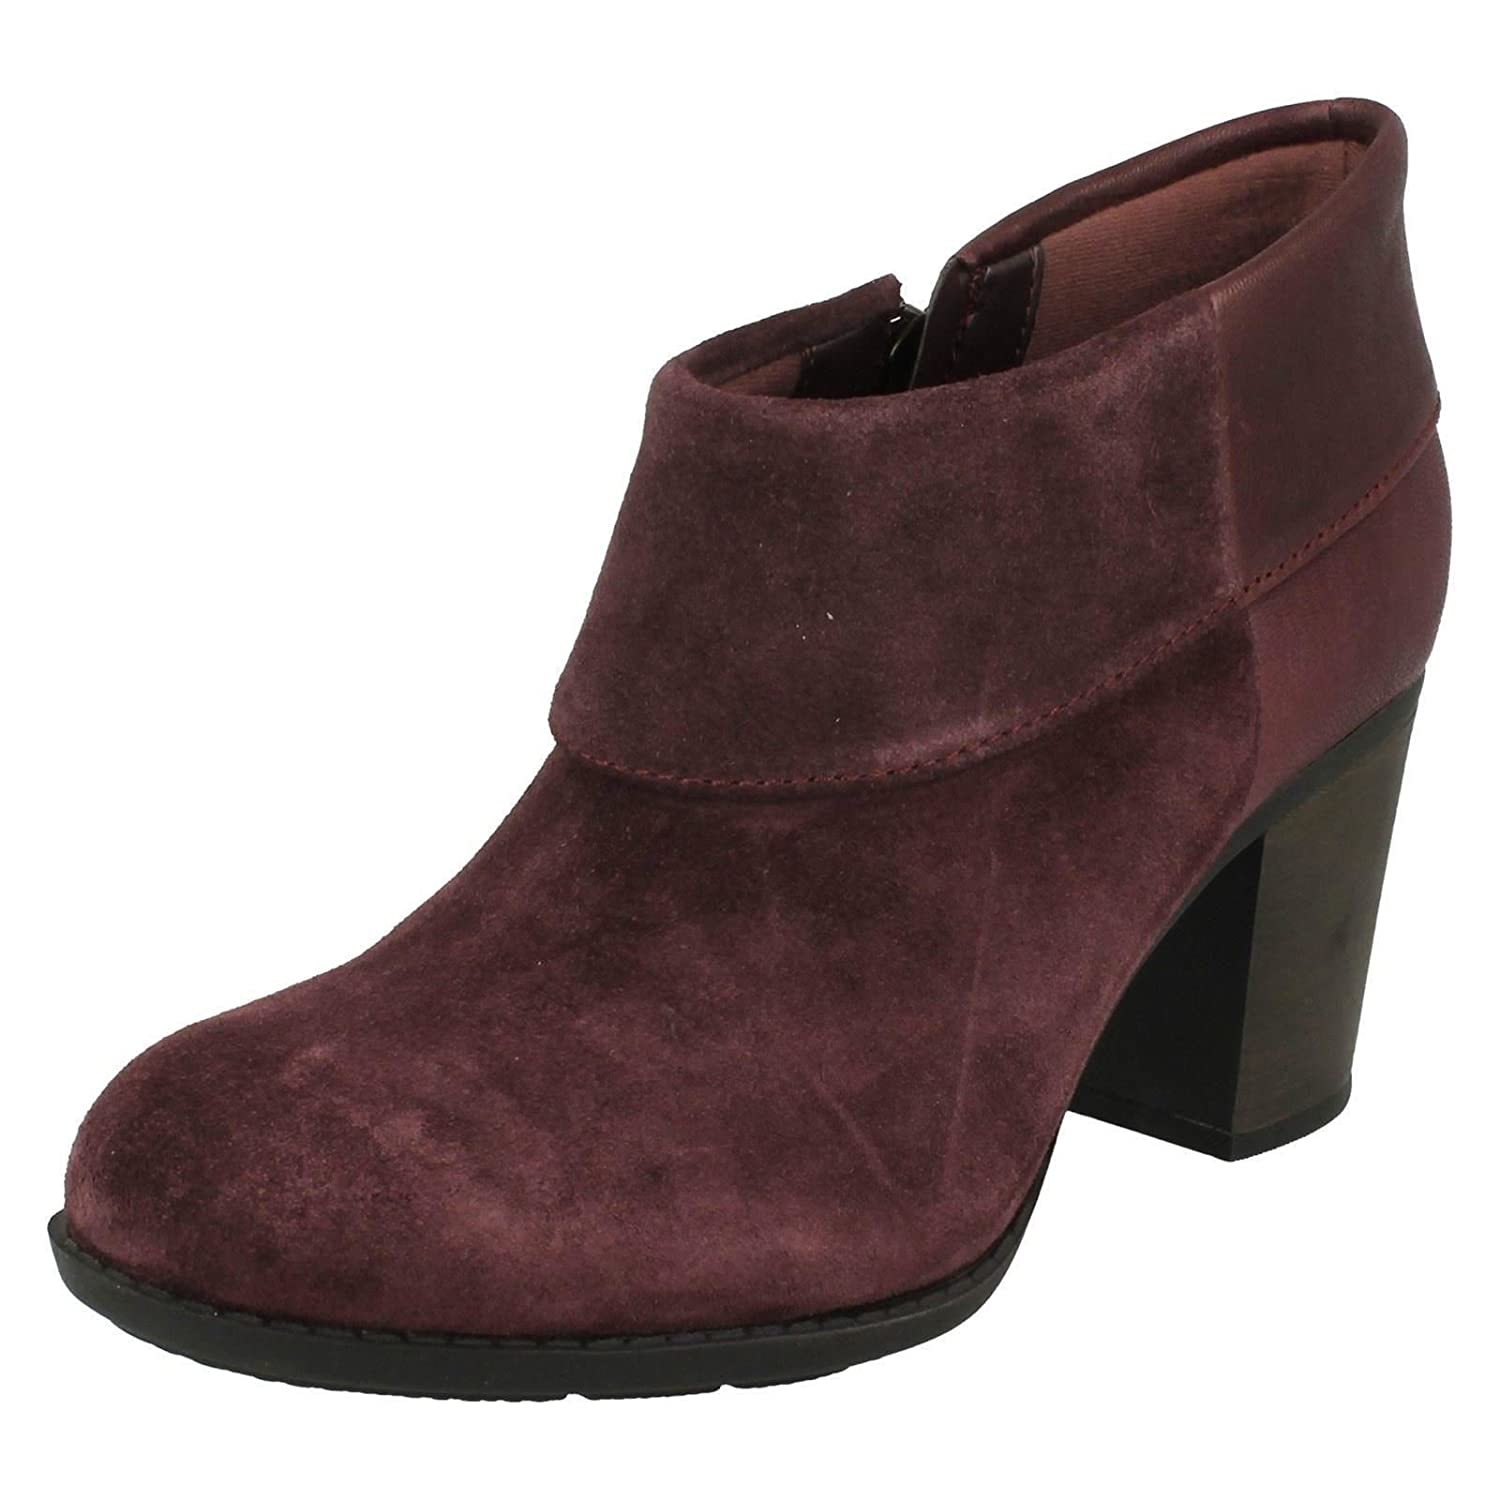 366ea2e2 Clarks Enfield Canal Womens Casual Ankle Boots